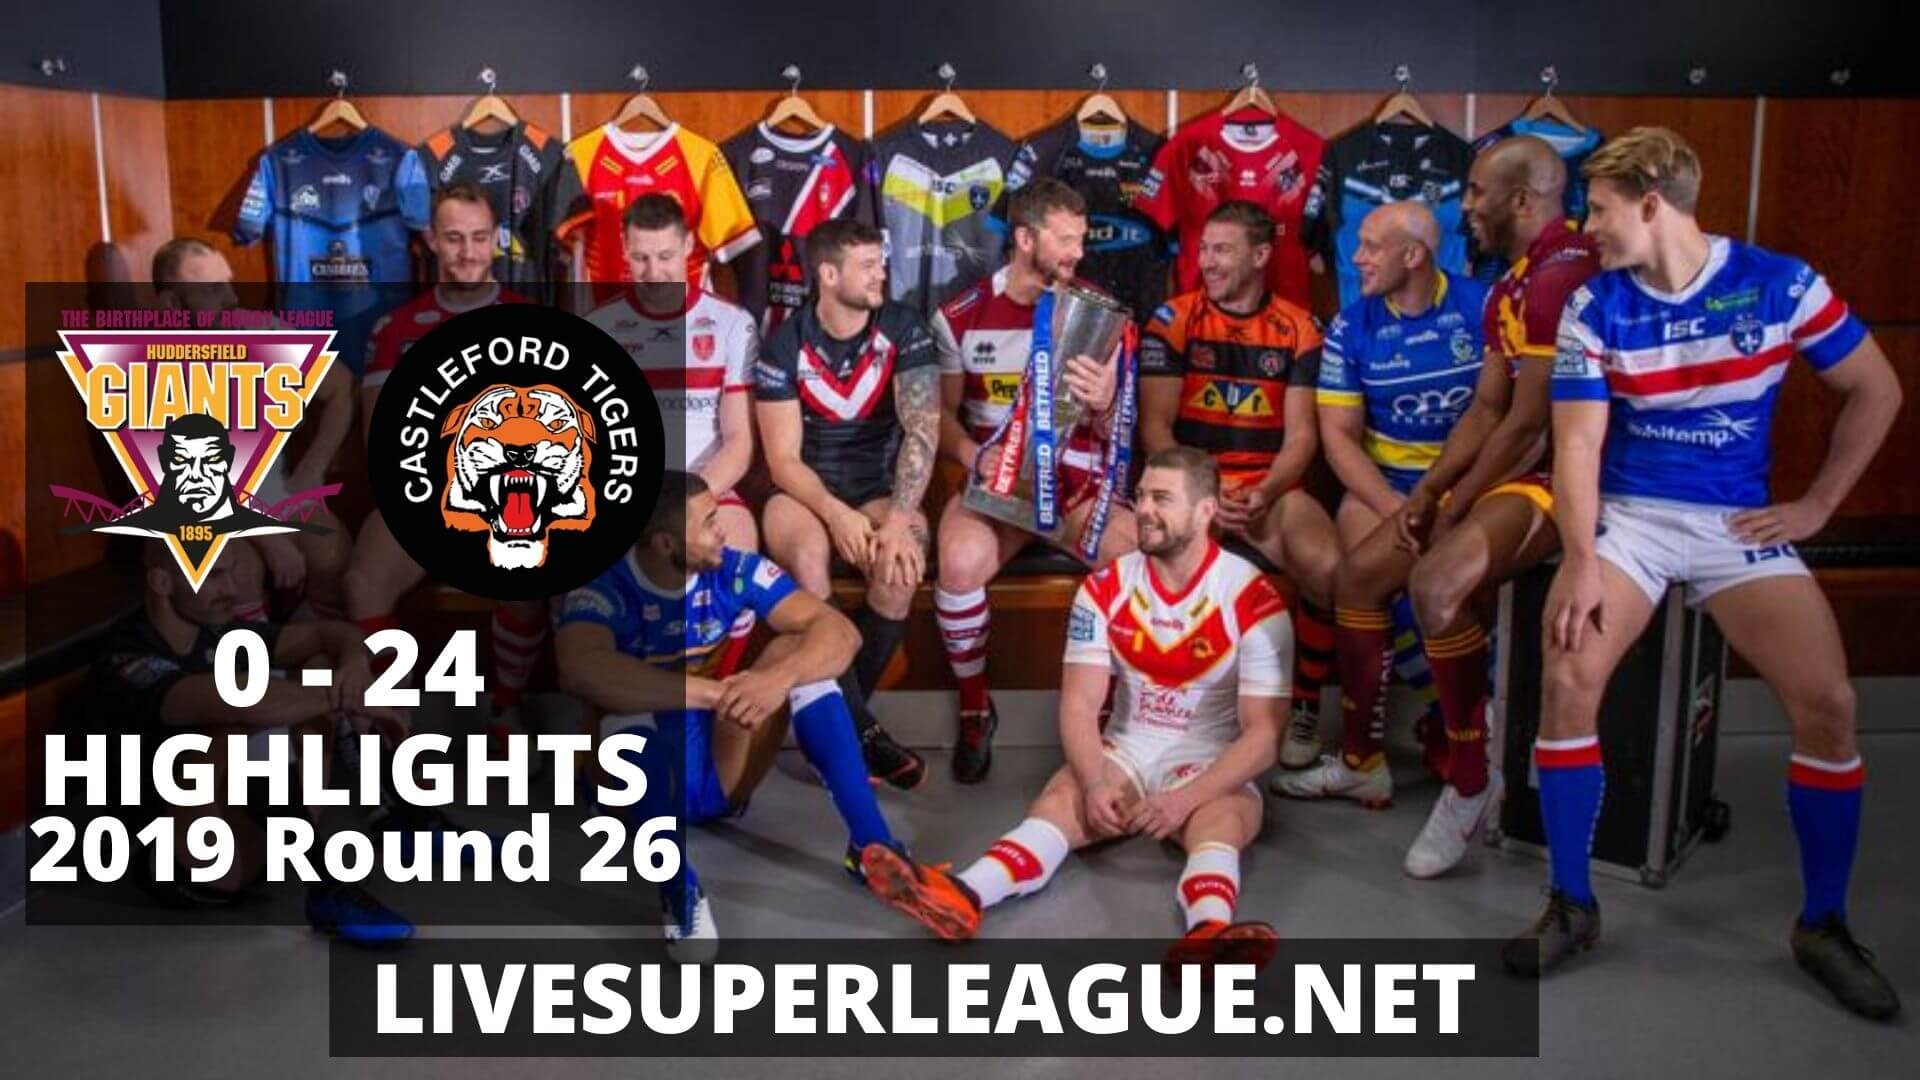 Huddersfield Giants Vs Castleford Tigers Highlights 2019 Round 26